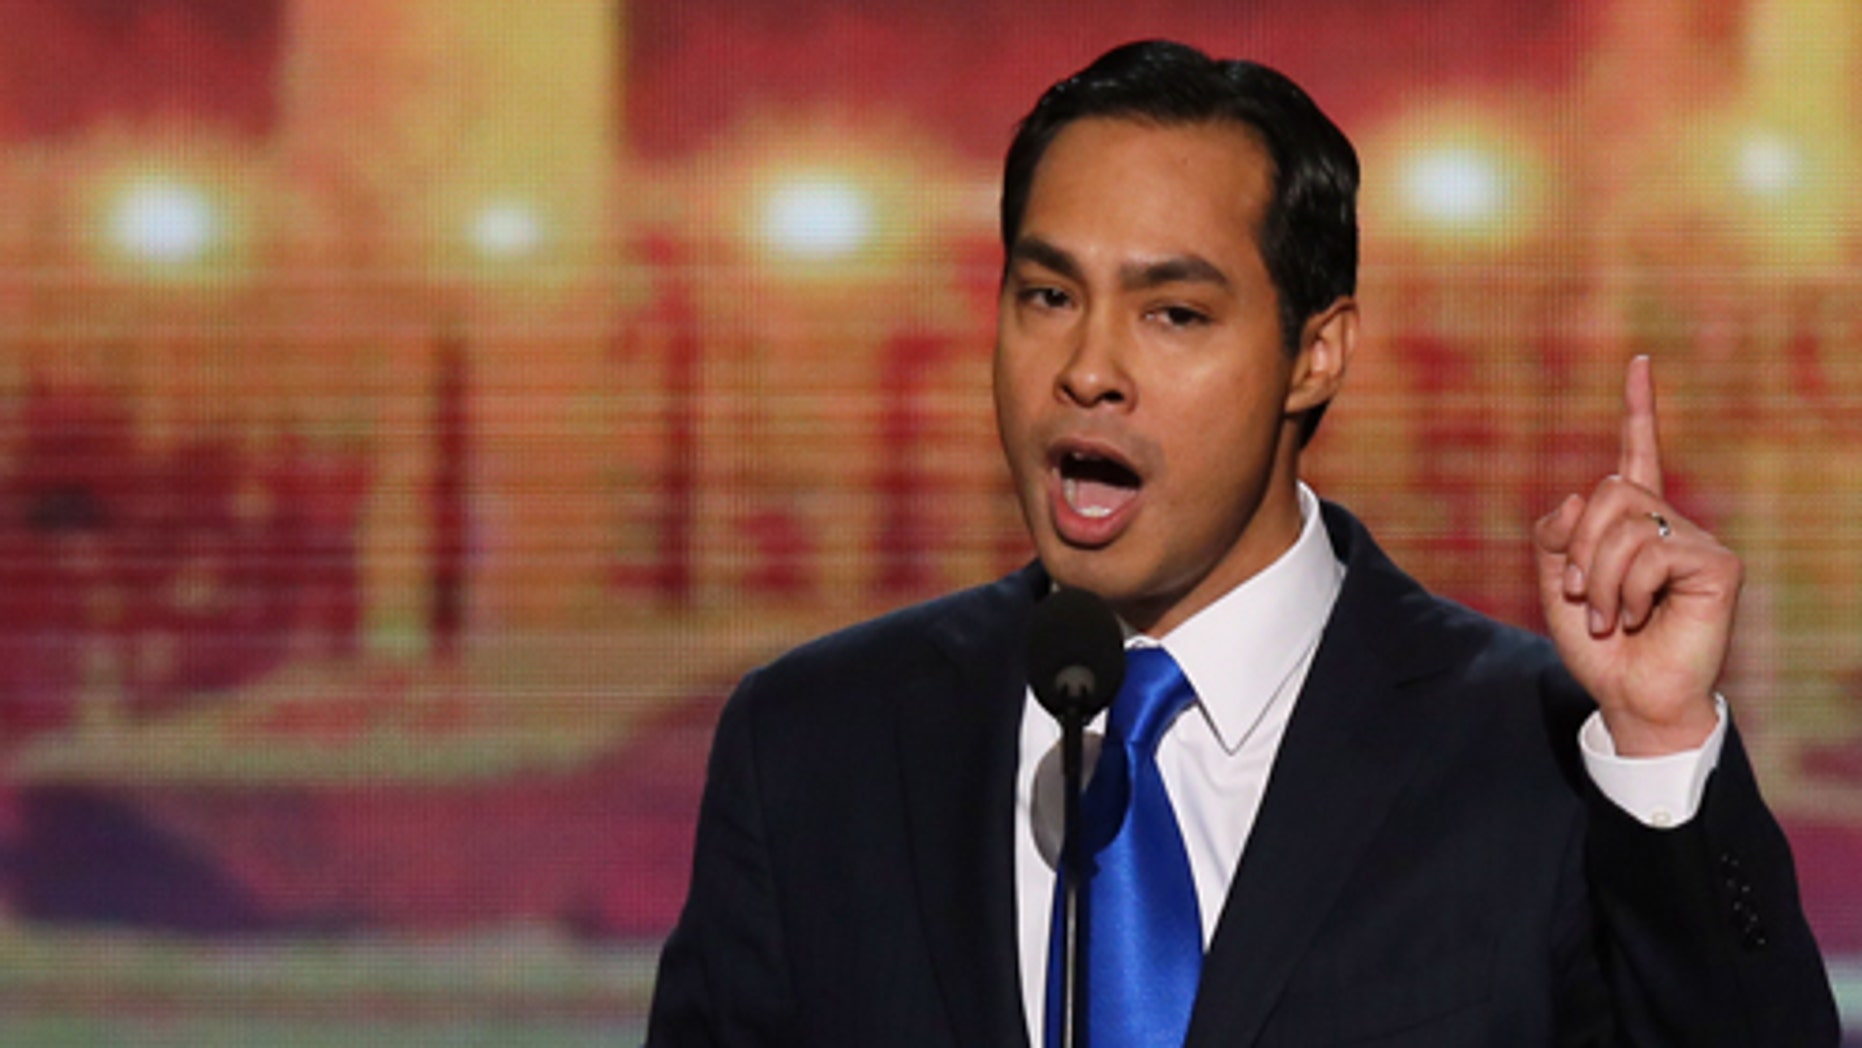 CHARLOTTE, NC - SEPTEMBER 04:  San Antonio Mayor Julian Castro gives the keynote address on stage during day one of the Democratic National Convention at Time Warner Cable Arena on September 4, 2012 in Charlotte, North Carolina. The DNC that will run through September 7, will nominate U.S. President Barack Obama as the Democratic presidential candidate.  (Photo by Alex Wong/Getty Images)